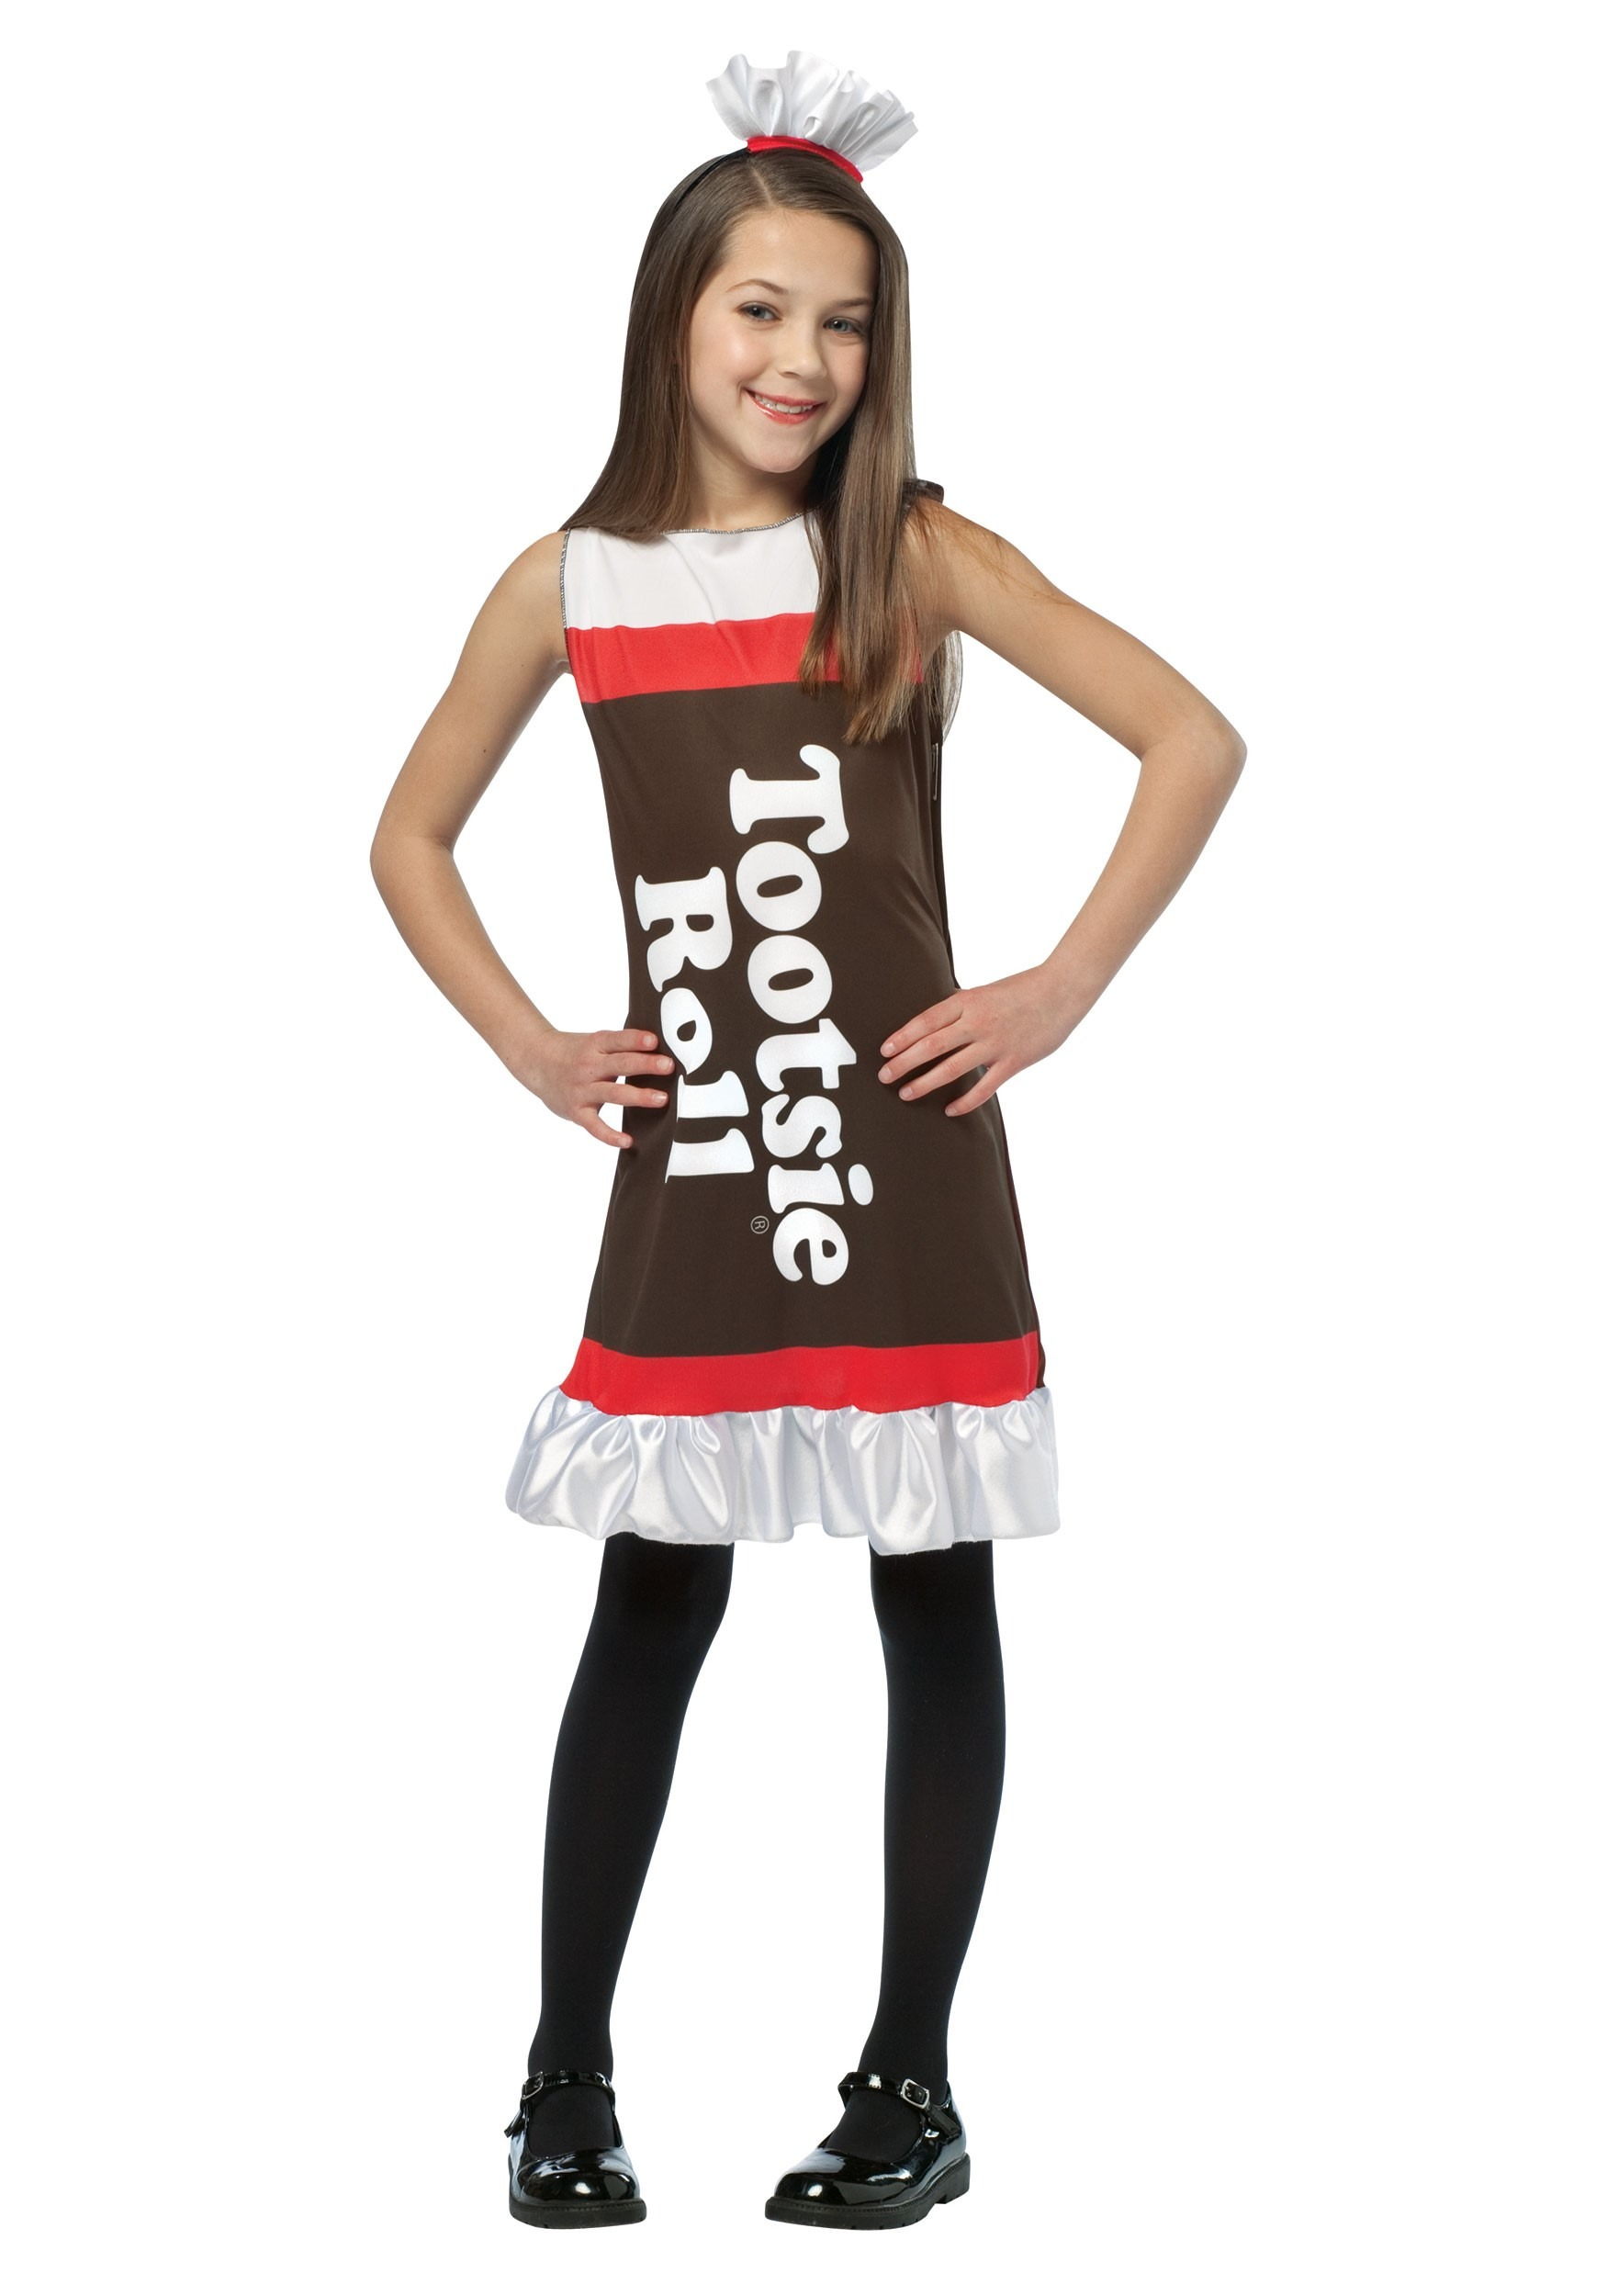 Halloween Costumes For Teens And Kids / Image Source  sc 1 st  TimyKids & Halloween Costumes For Teens And Kids | TimyKids